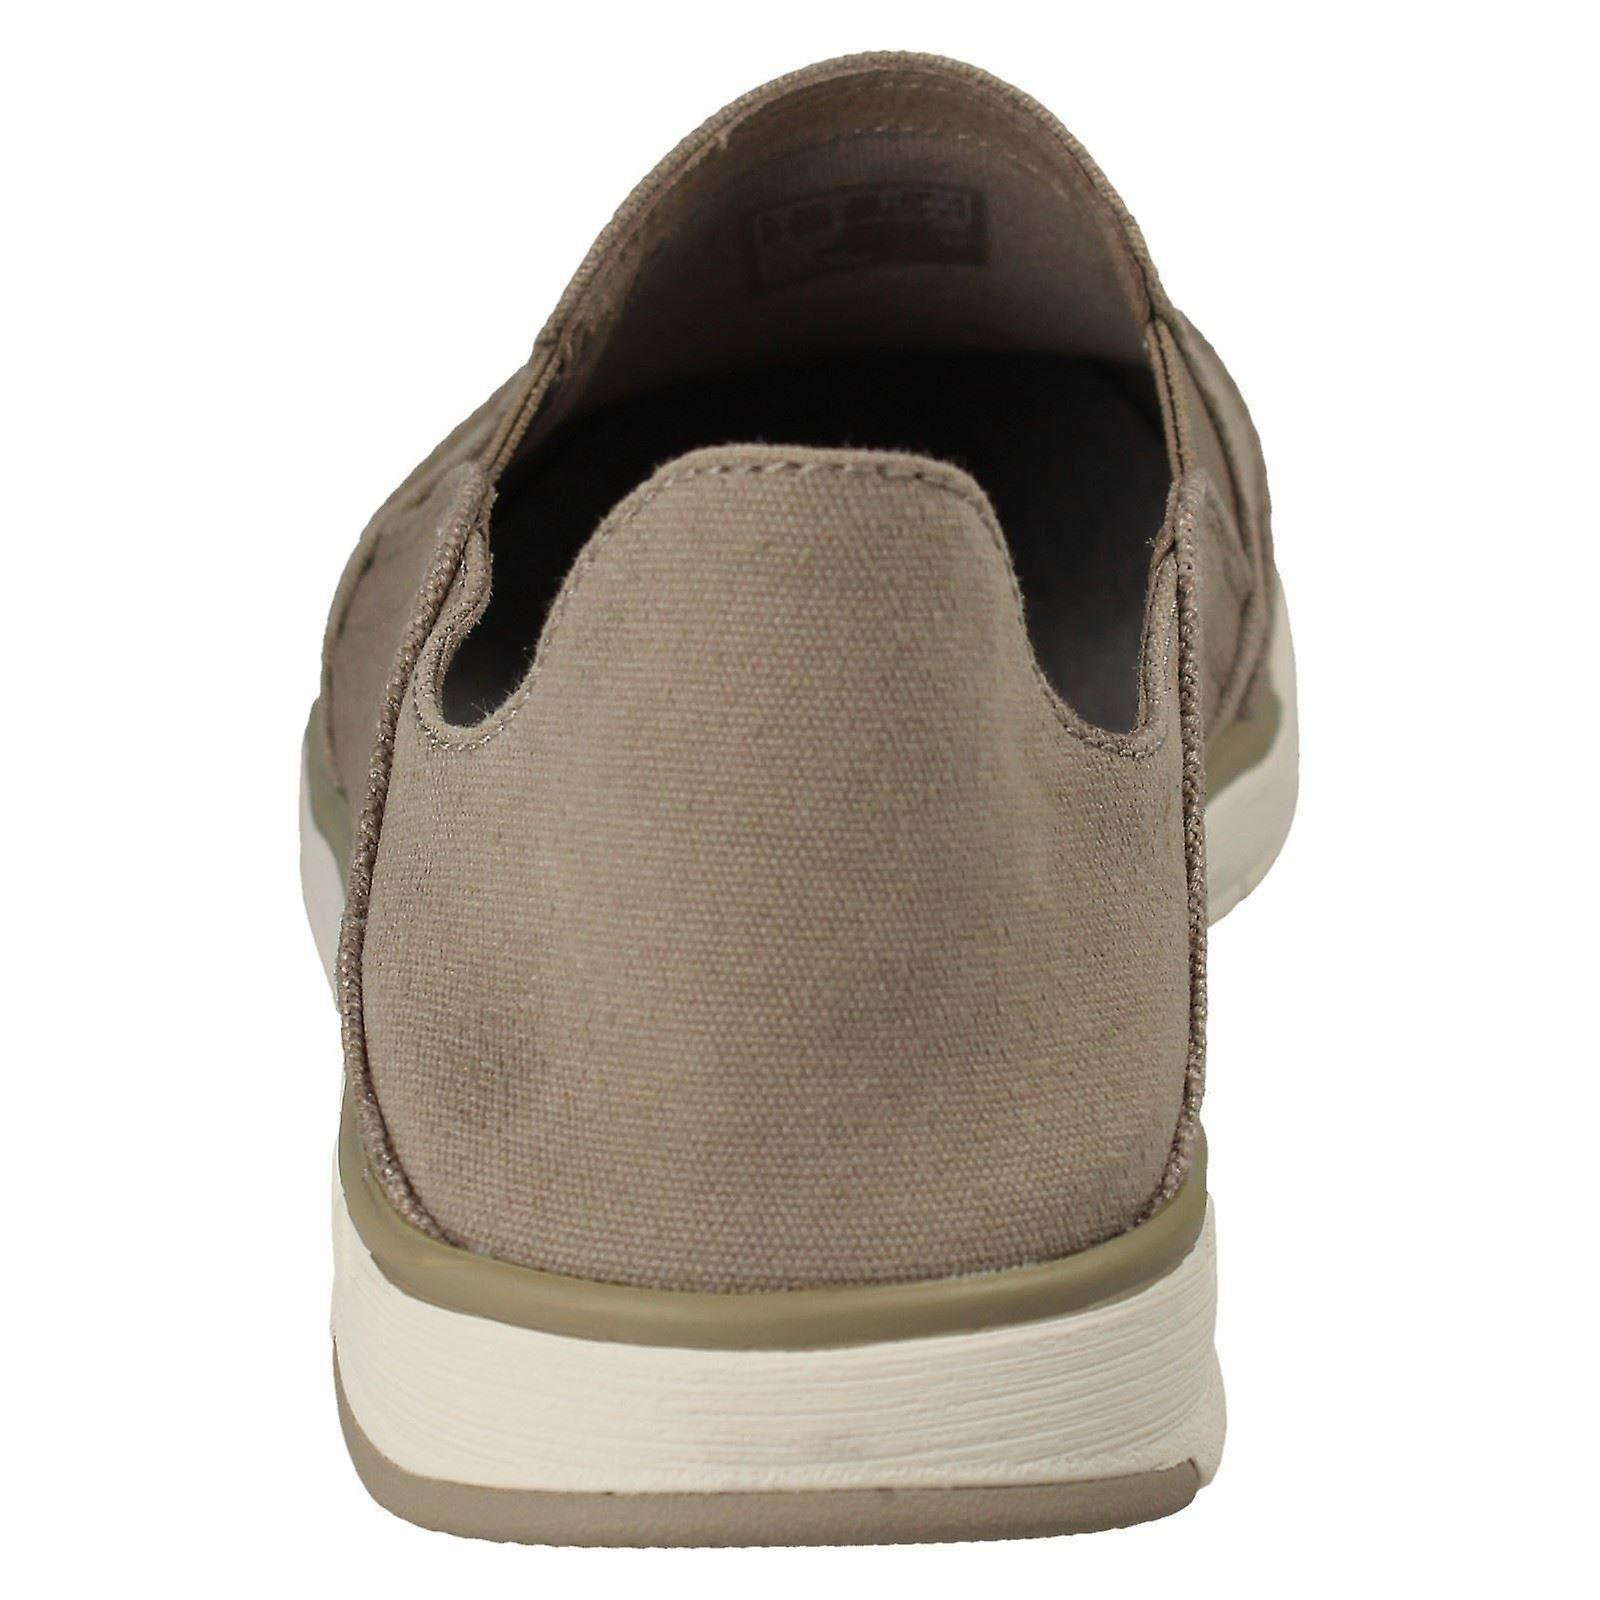 Mens Cloud Steppers door Clarks Canvas Slip On Shoes Step Isle Row 4Tv8nB